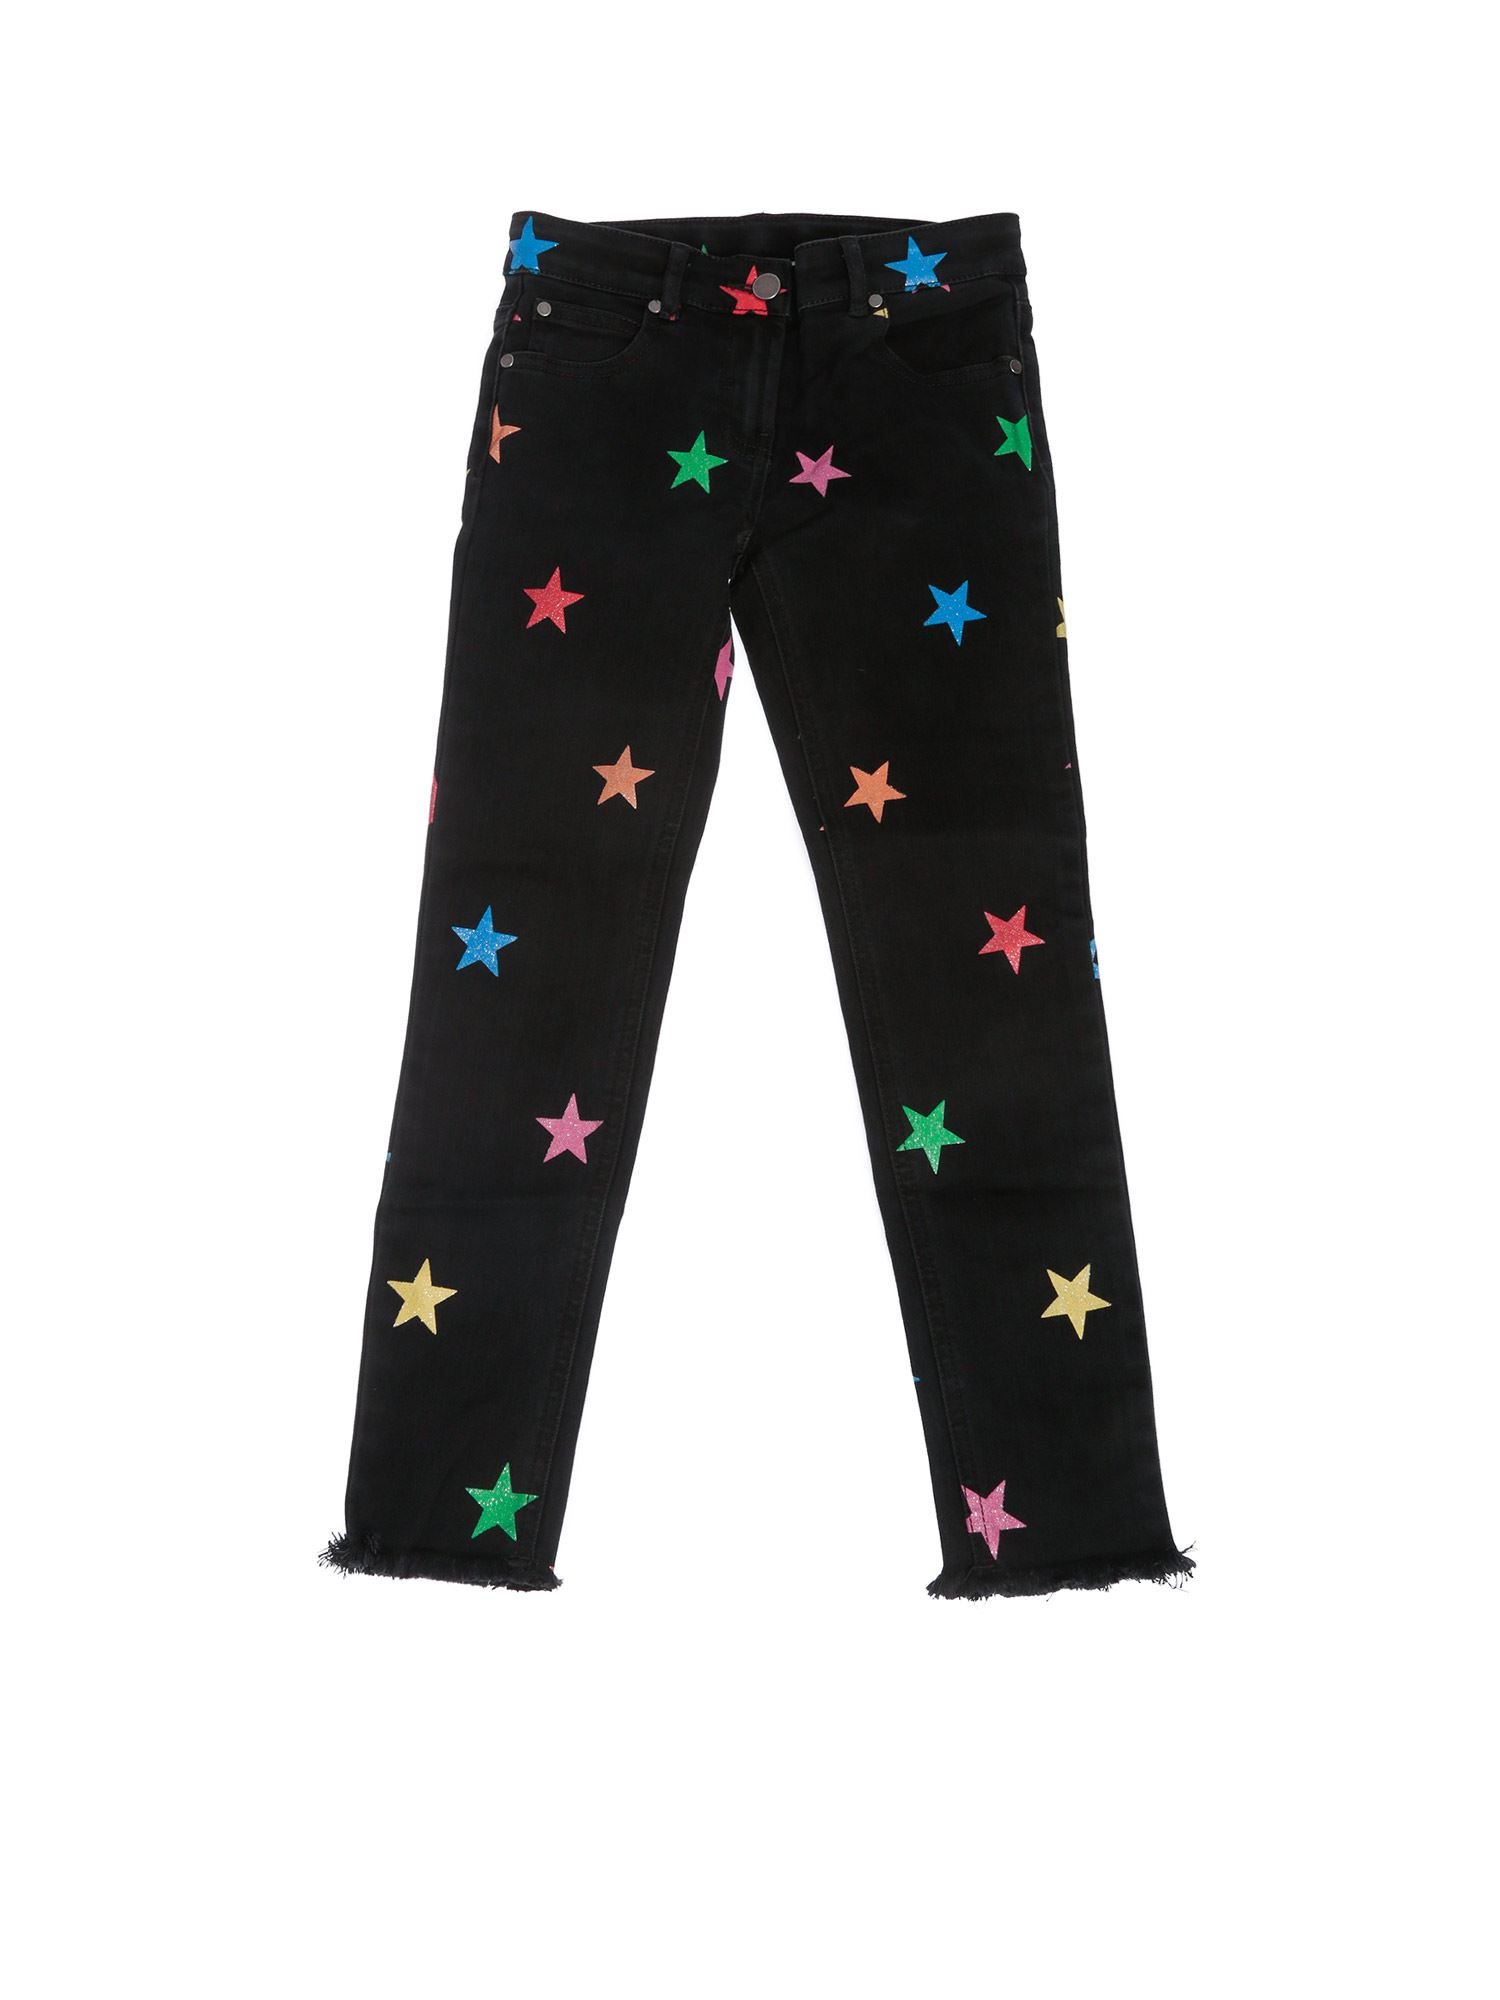 Stella Mccartney BLACK GLITTER STARS DENIM